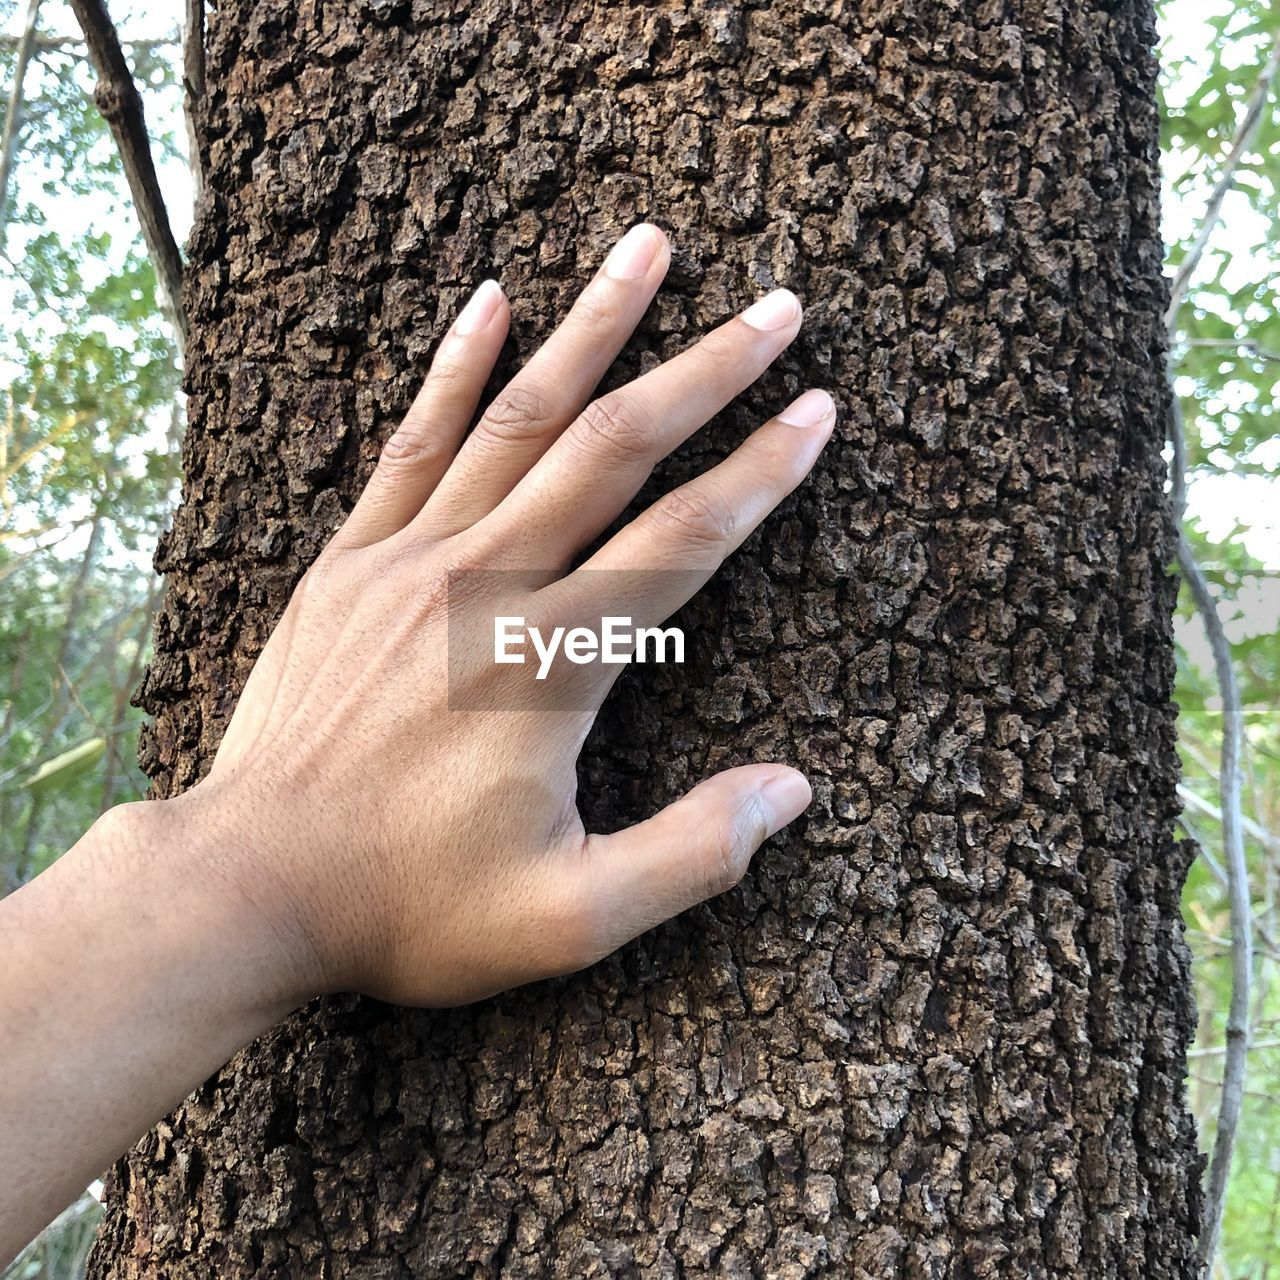 CLOSE-UP OF HUMAN HAND TOUCHING TREE TRUNK